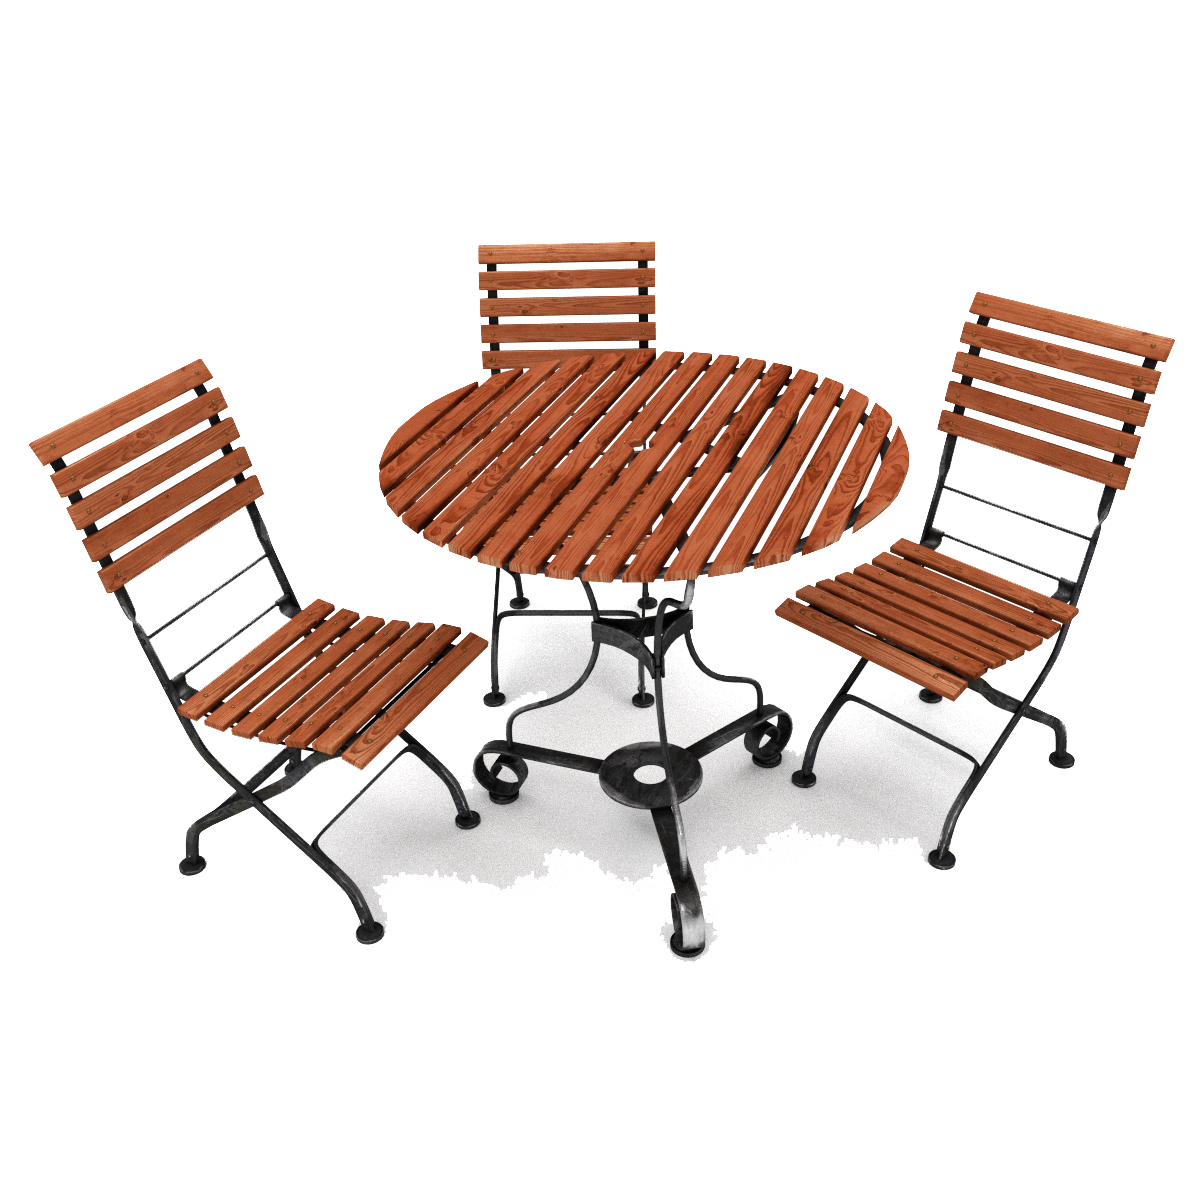 Clipart chair garden chair. Table furniture outdoor png